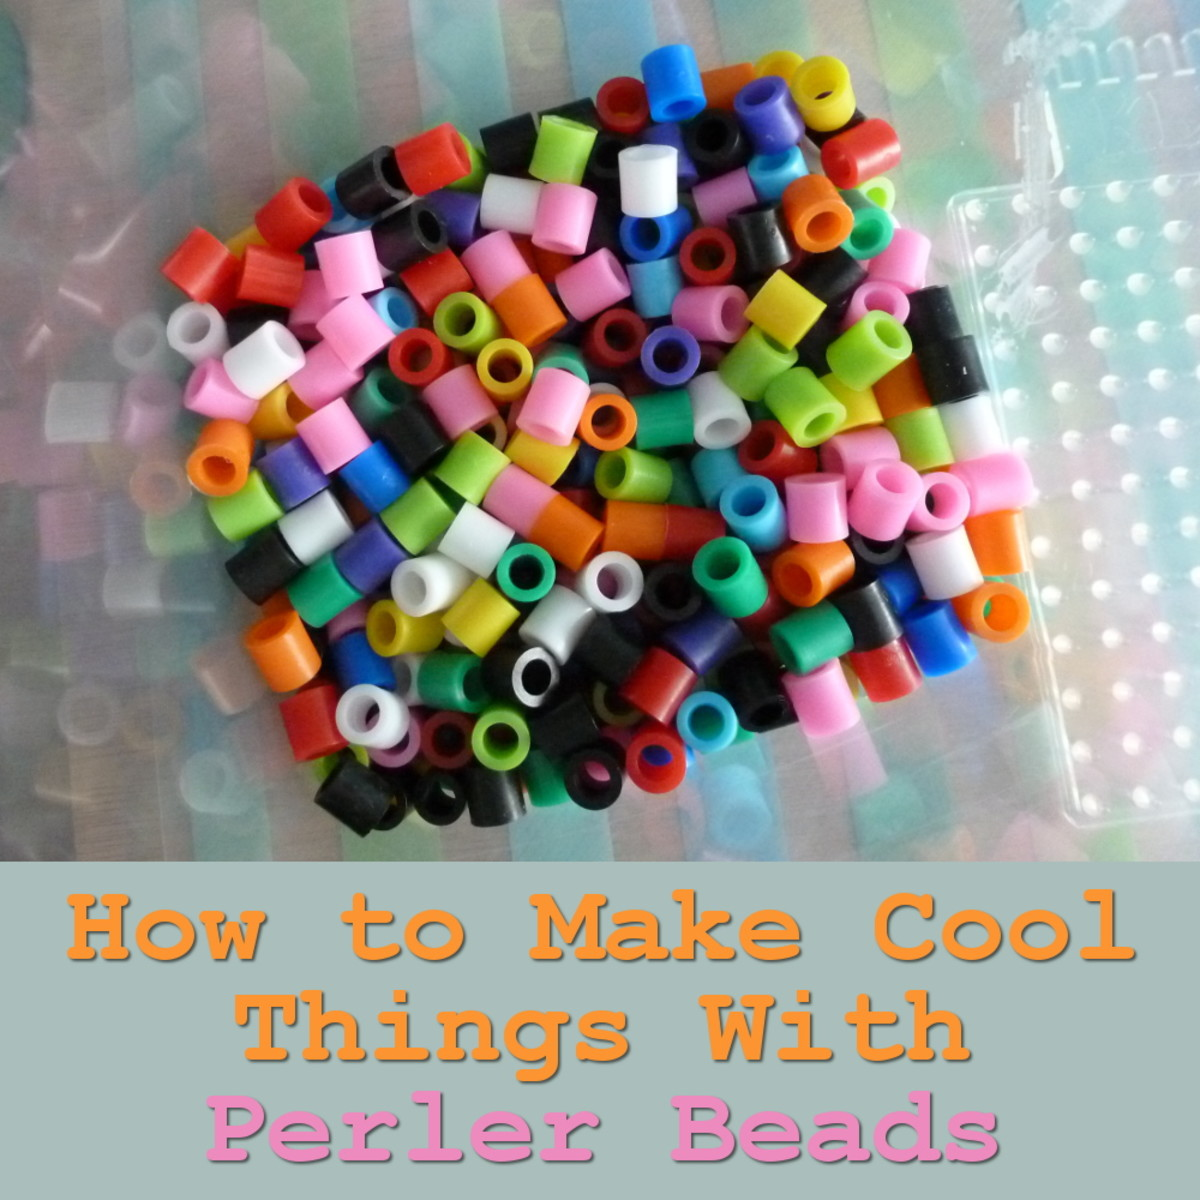 How To Make A Two Story Living Room Cozy: How To Make Things With Perler Beads